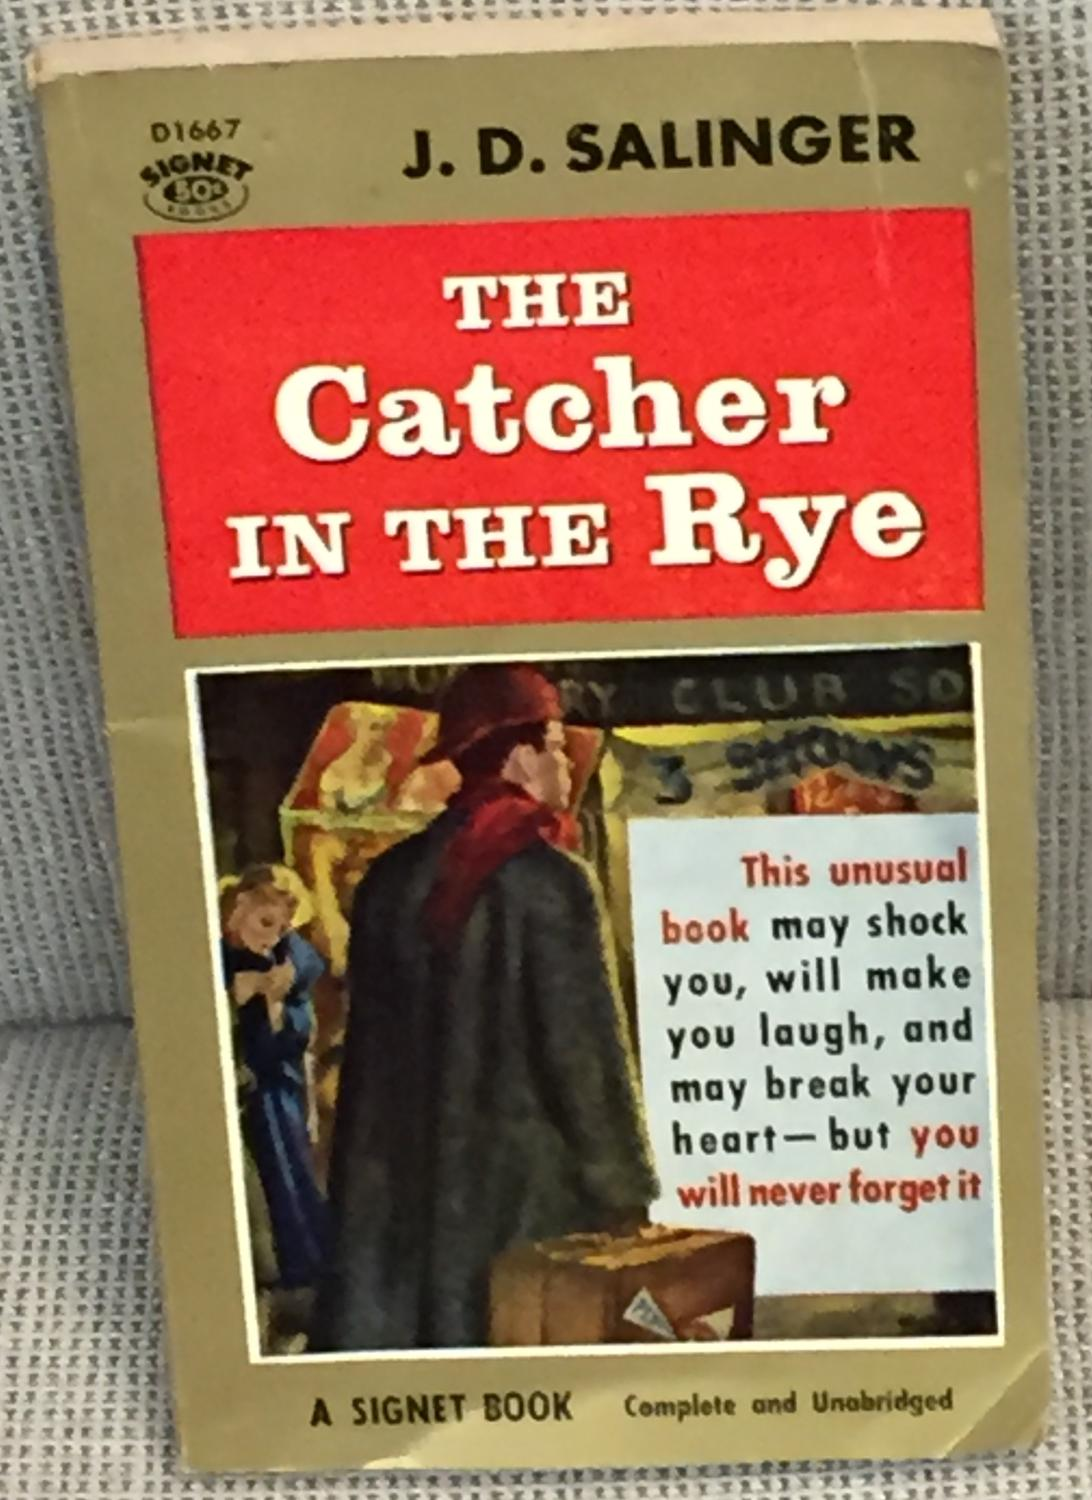 catcher in the rye by salinger